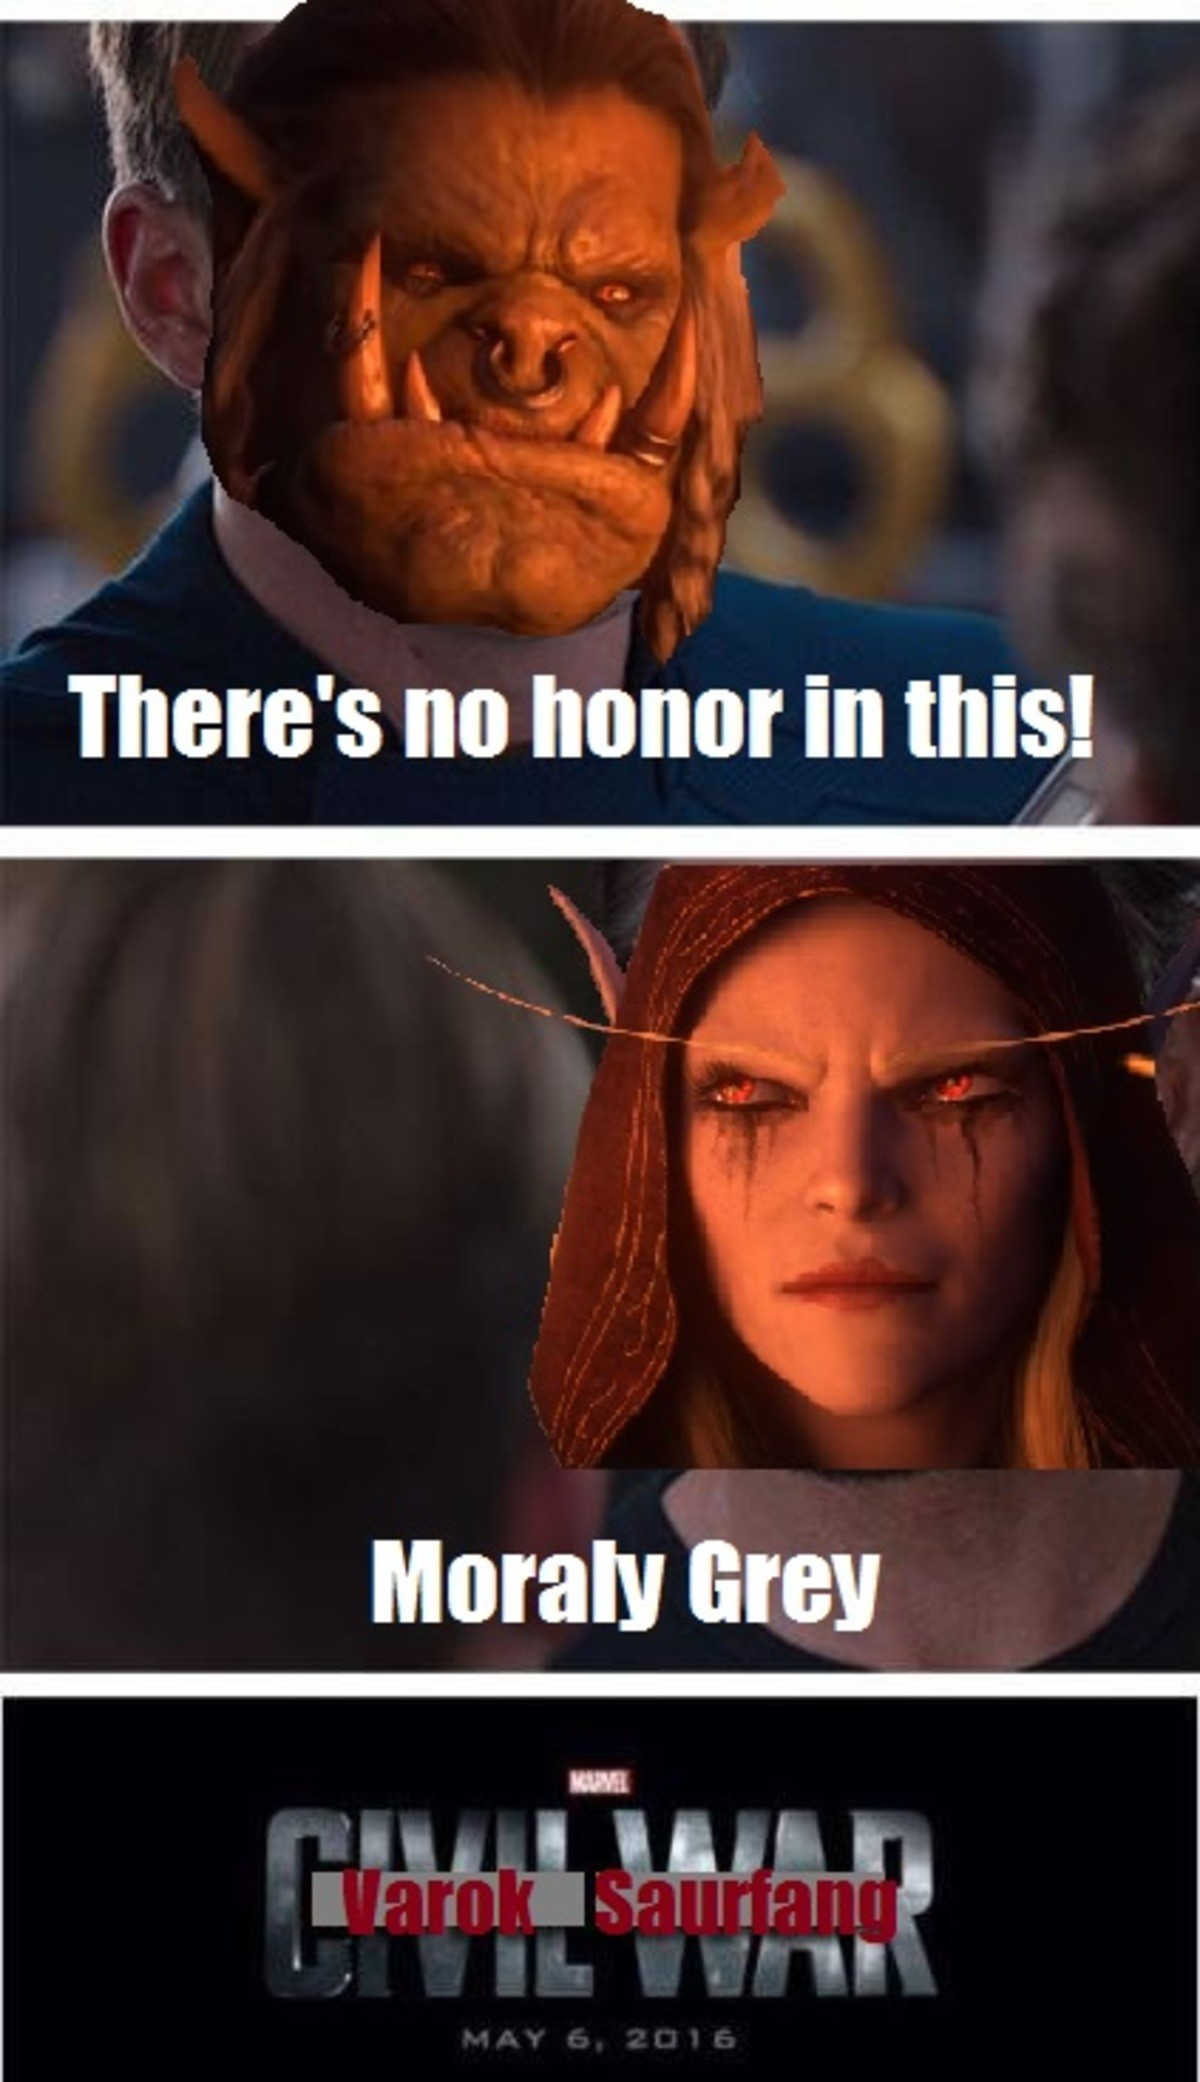 World of Warcraft Civil War. .. Morally grey my ass. I have always, and will always be a proud member of the Horde. I aleady liked the Horde way more back in Warcraft 2. But what Sylvanas did